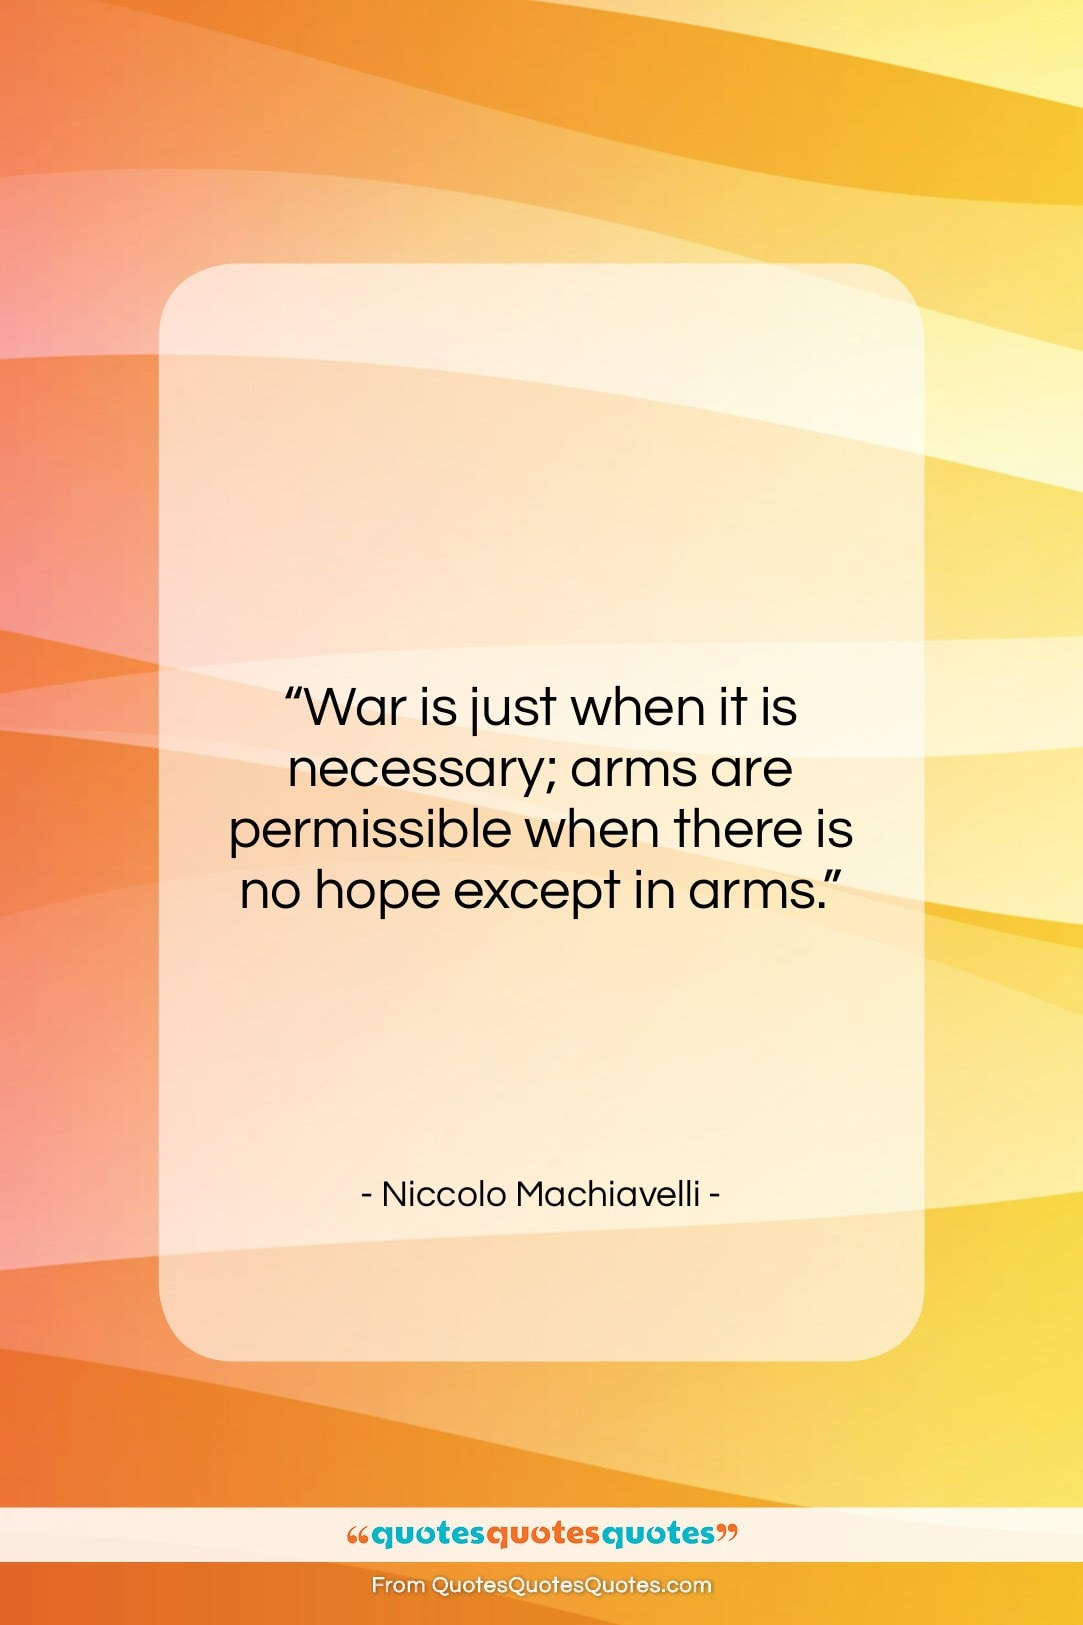 """Niccolo Machiavelli quote: """"War is just when it is necessary;…""""- at QuotesQuotesQuotes.com"""